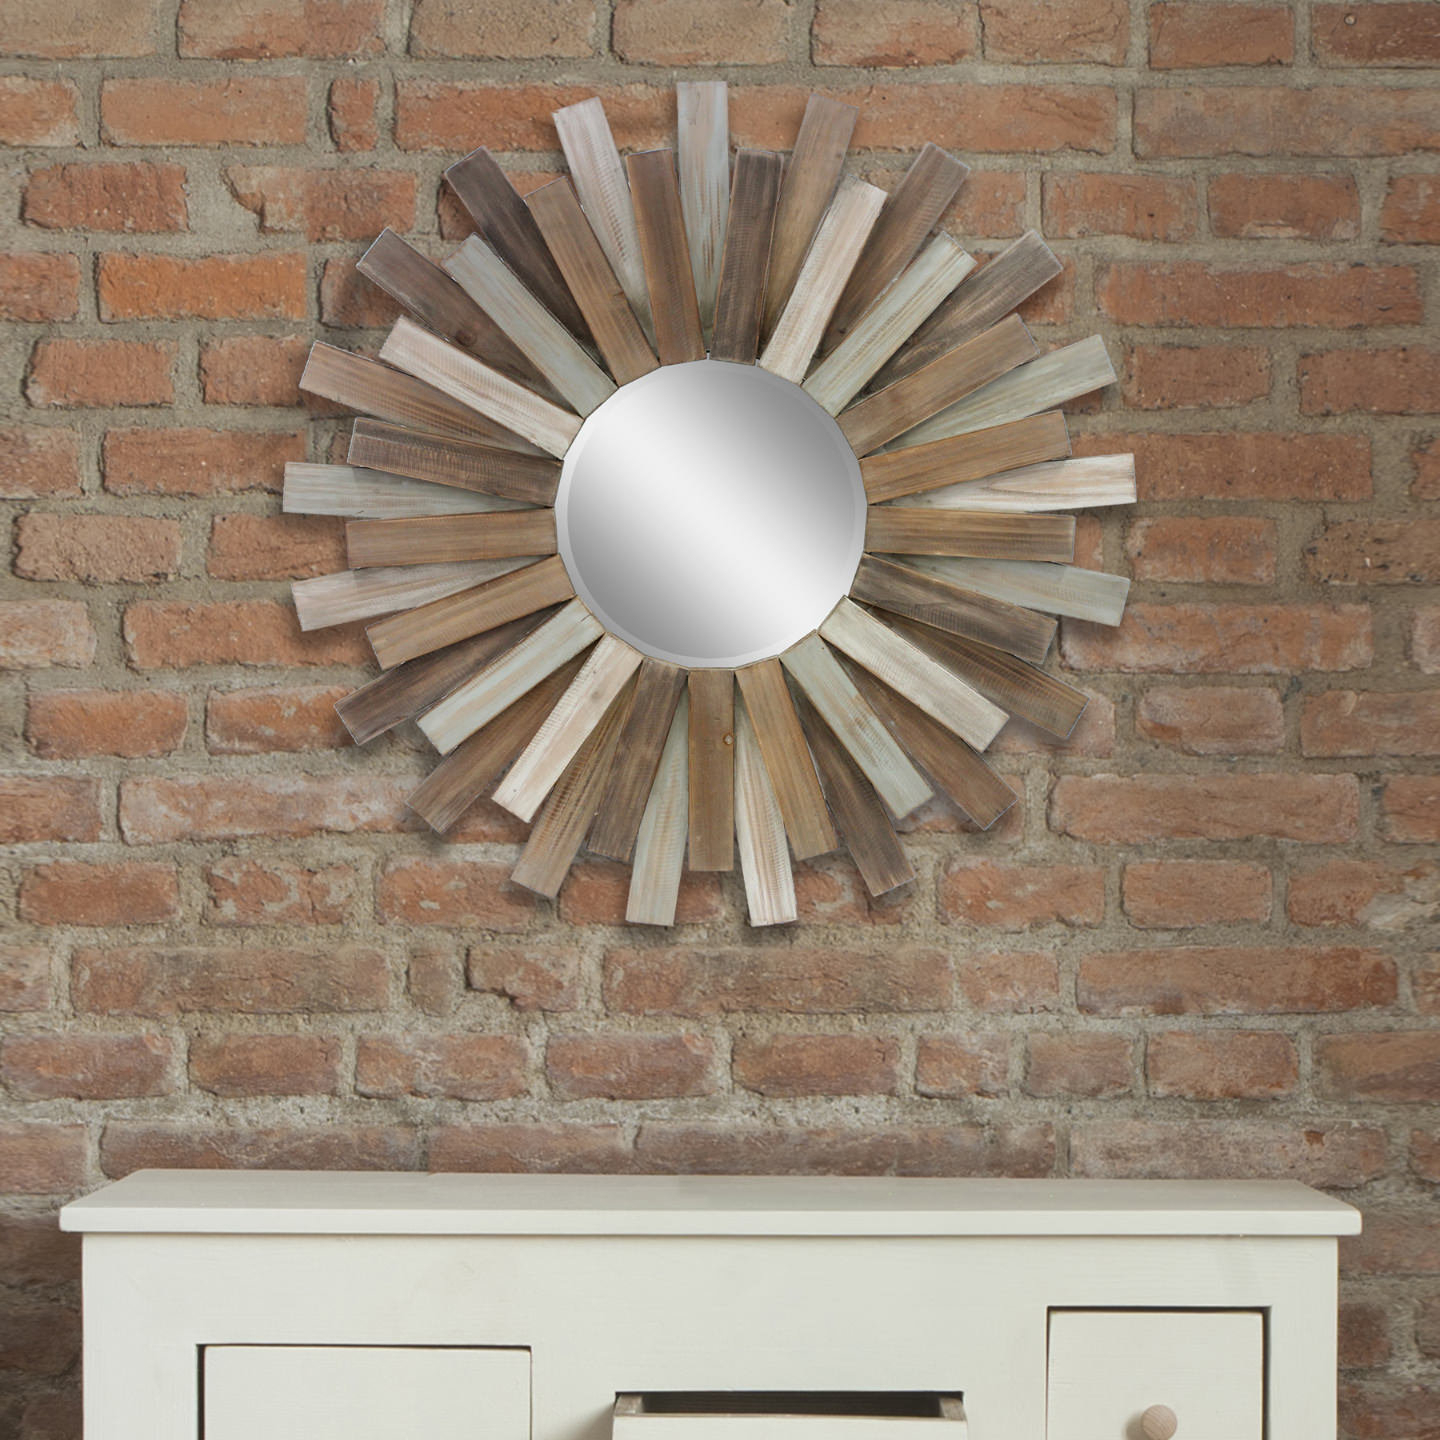 Unique Wall Mirrors Throughout Recent Nuttall Wooden Sunburst Rustic Wall Mirror (View 19 of 20)